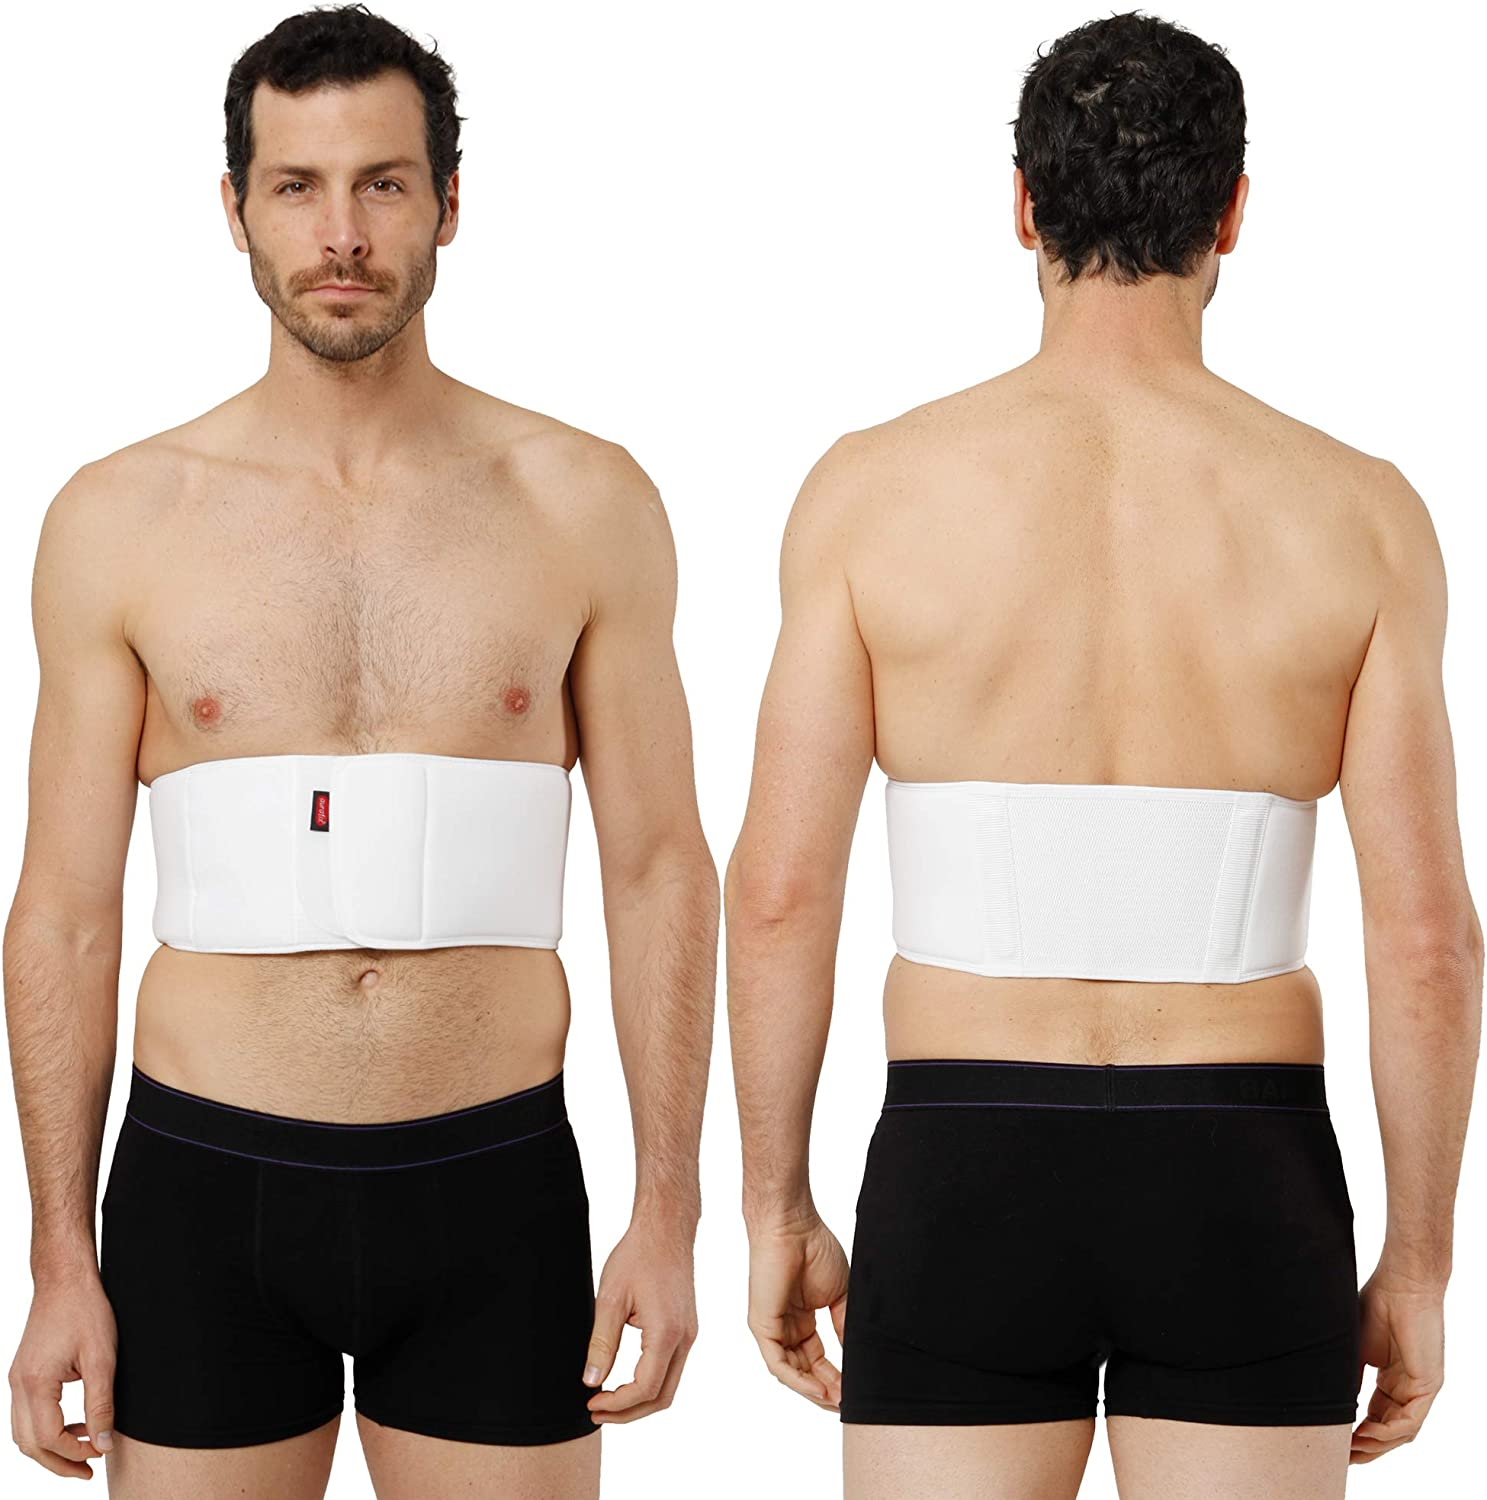 XXL Fractured Broken Rib Brace for Men and Women Dislocated Ribs Post-Surgery Aid Elastic Chest Wrap Compression Support Belt for Cracked